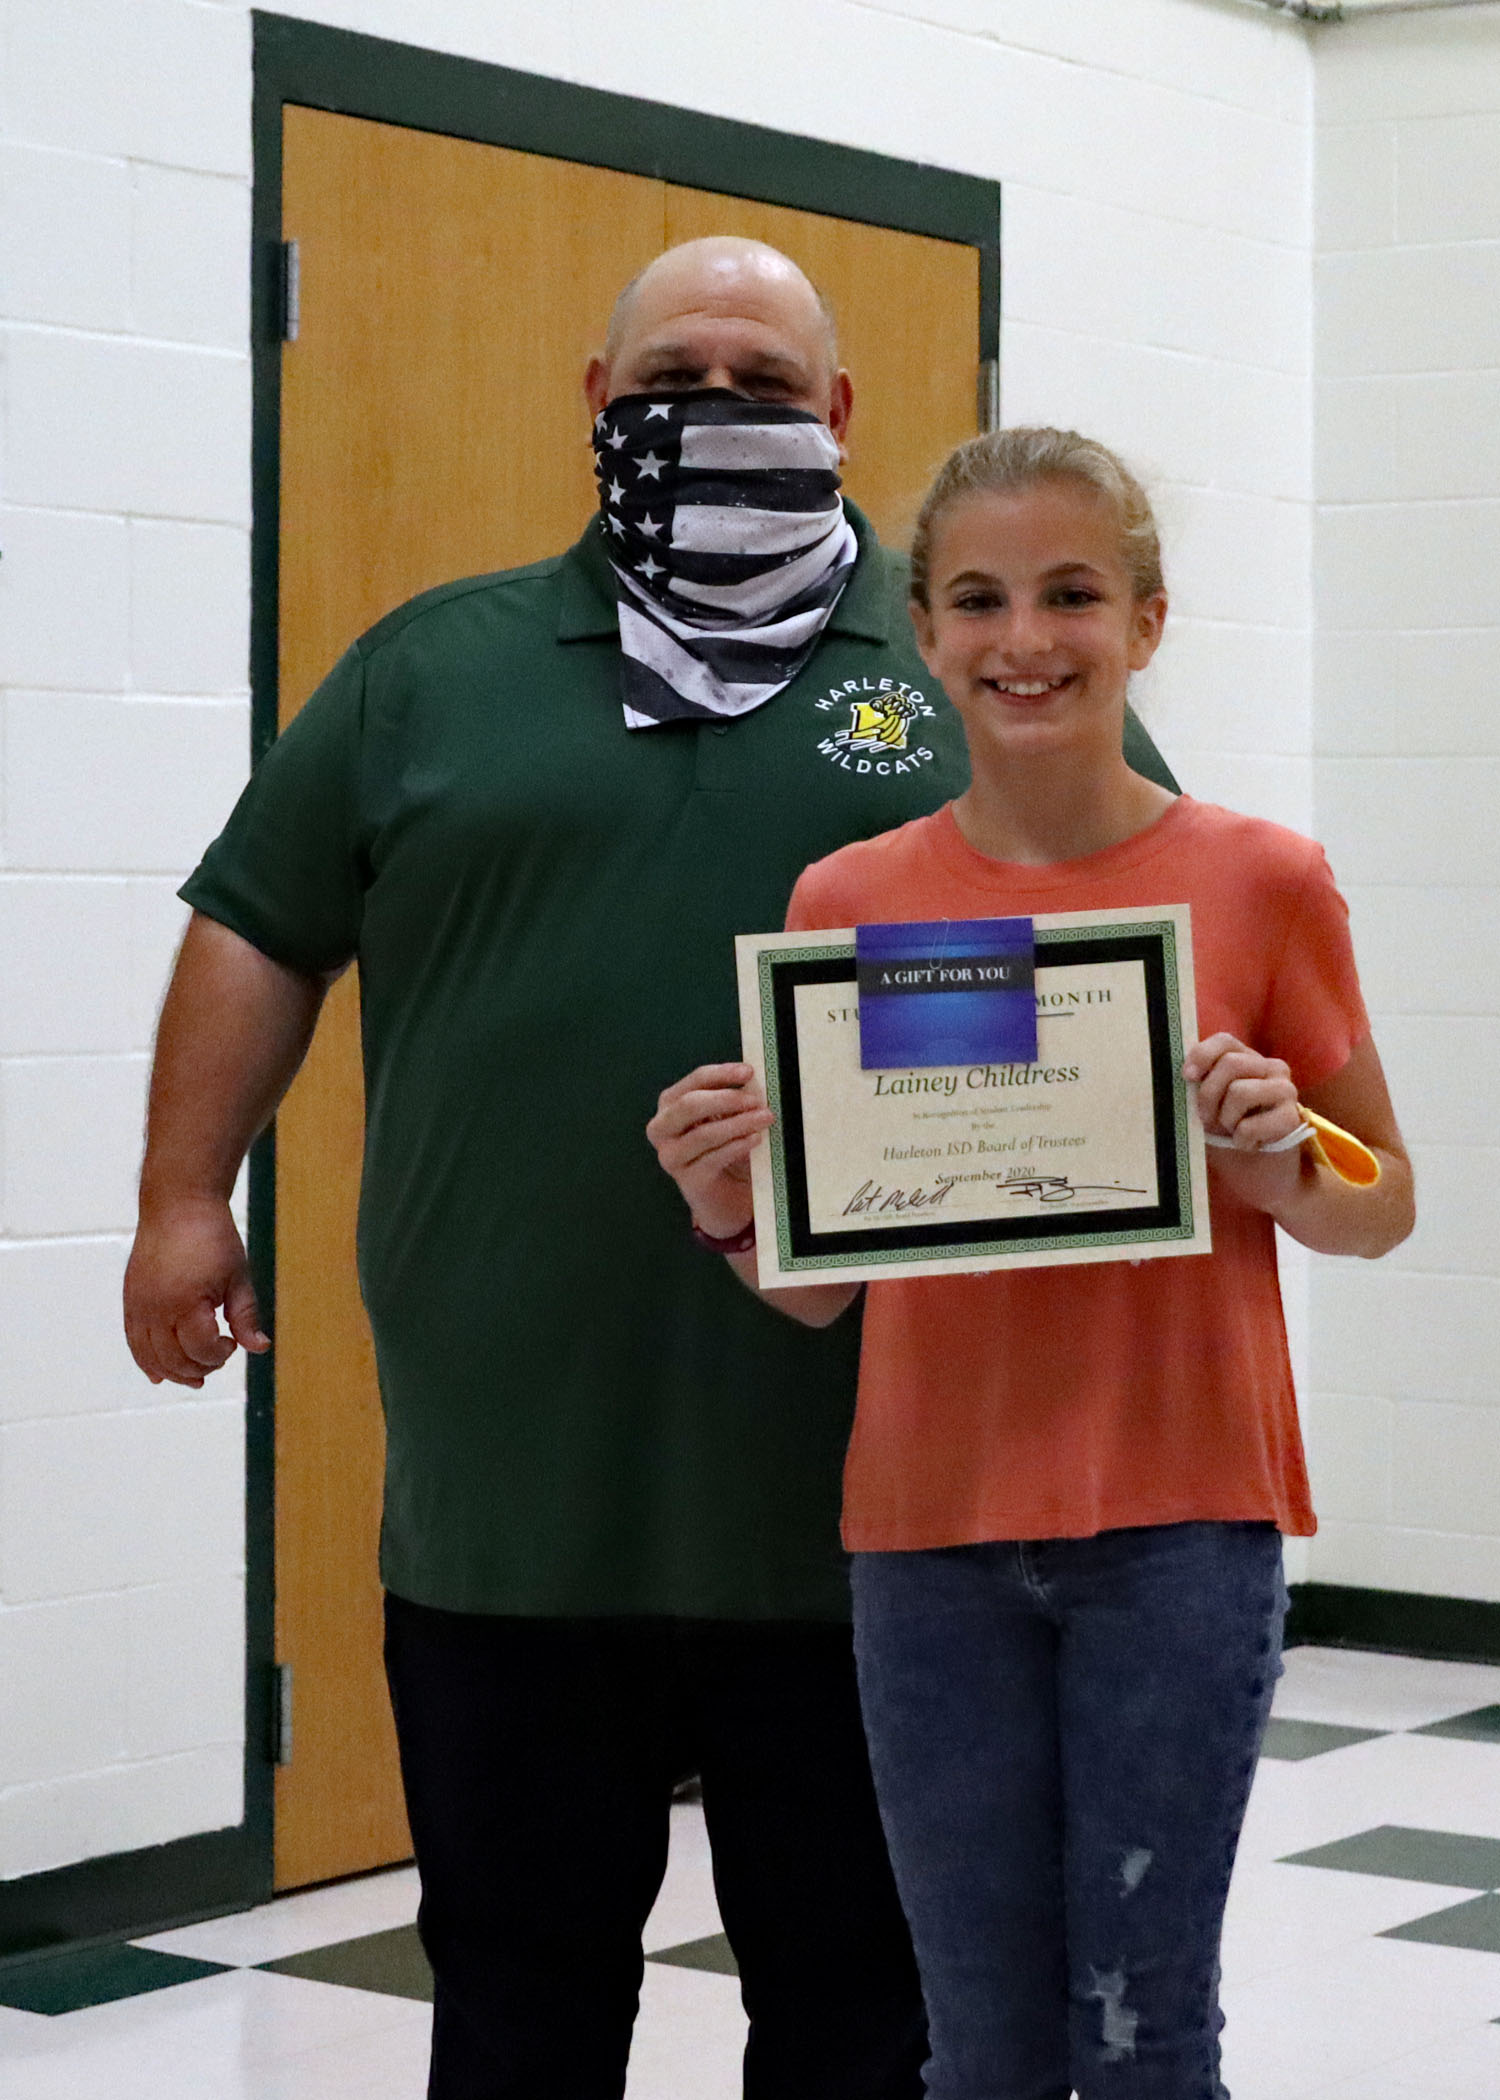 September Student of the Month Lainey Childress